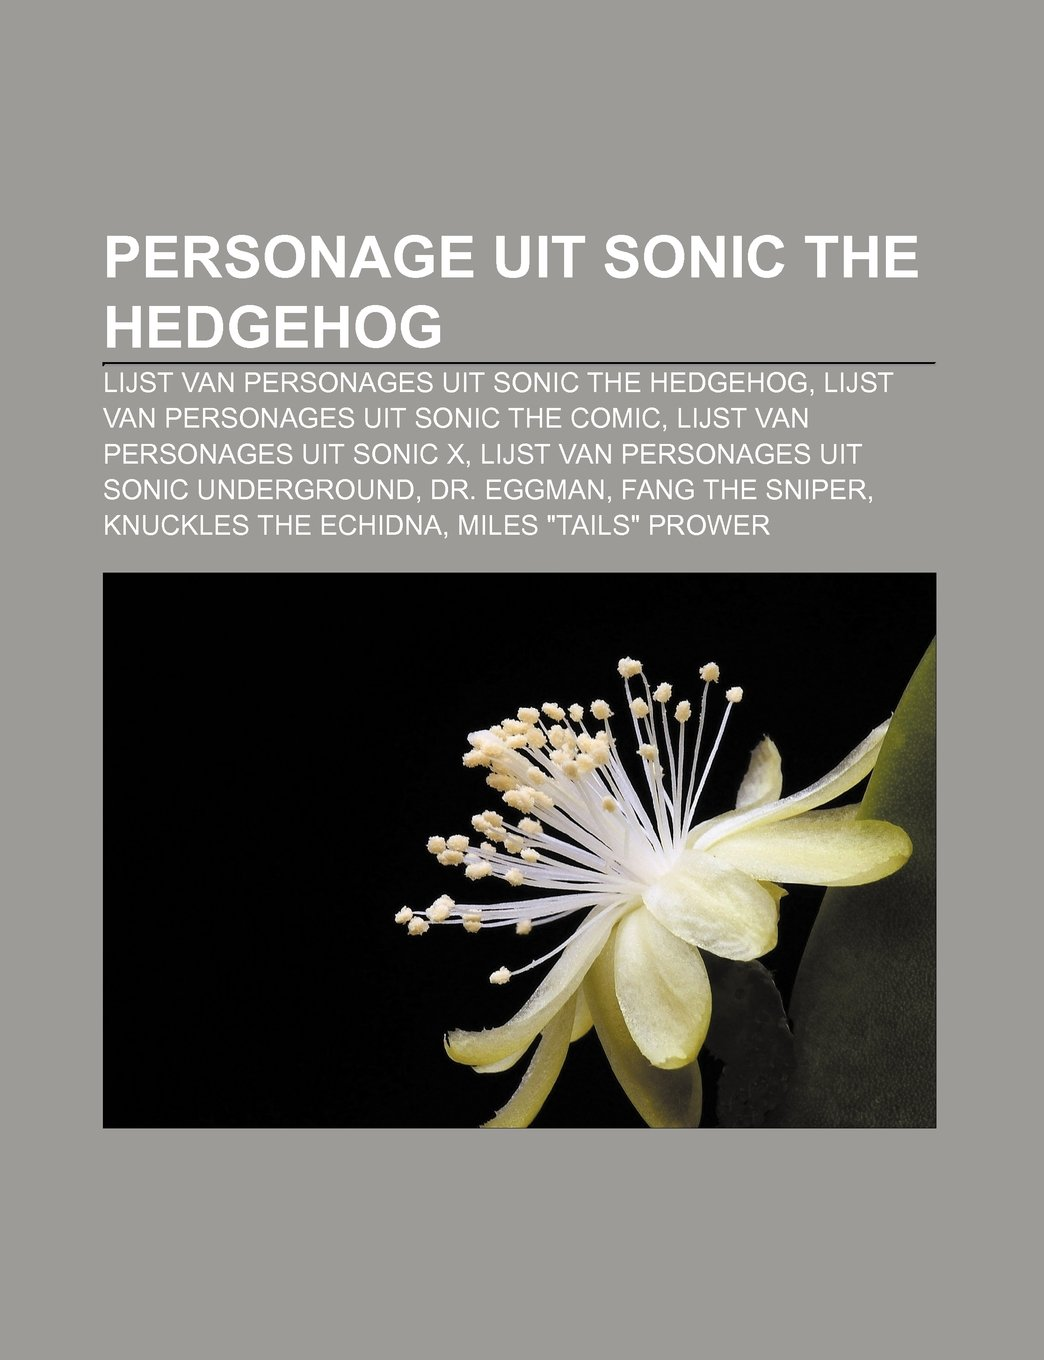 Personage uit Sonic the Hedgehog: Lijst van personages uit Sonic the Hedgehog, Lijst van personages uit Sonic the Comic: Amazon.es: Bron: Wikipedia: Libros en idiomas extranjeros